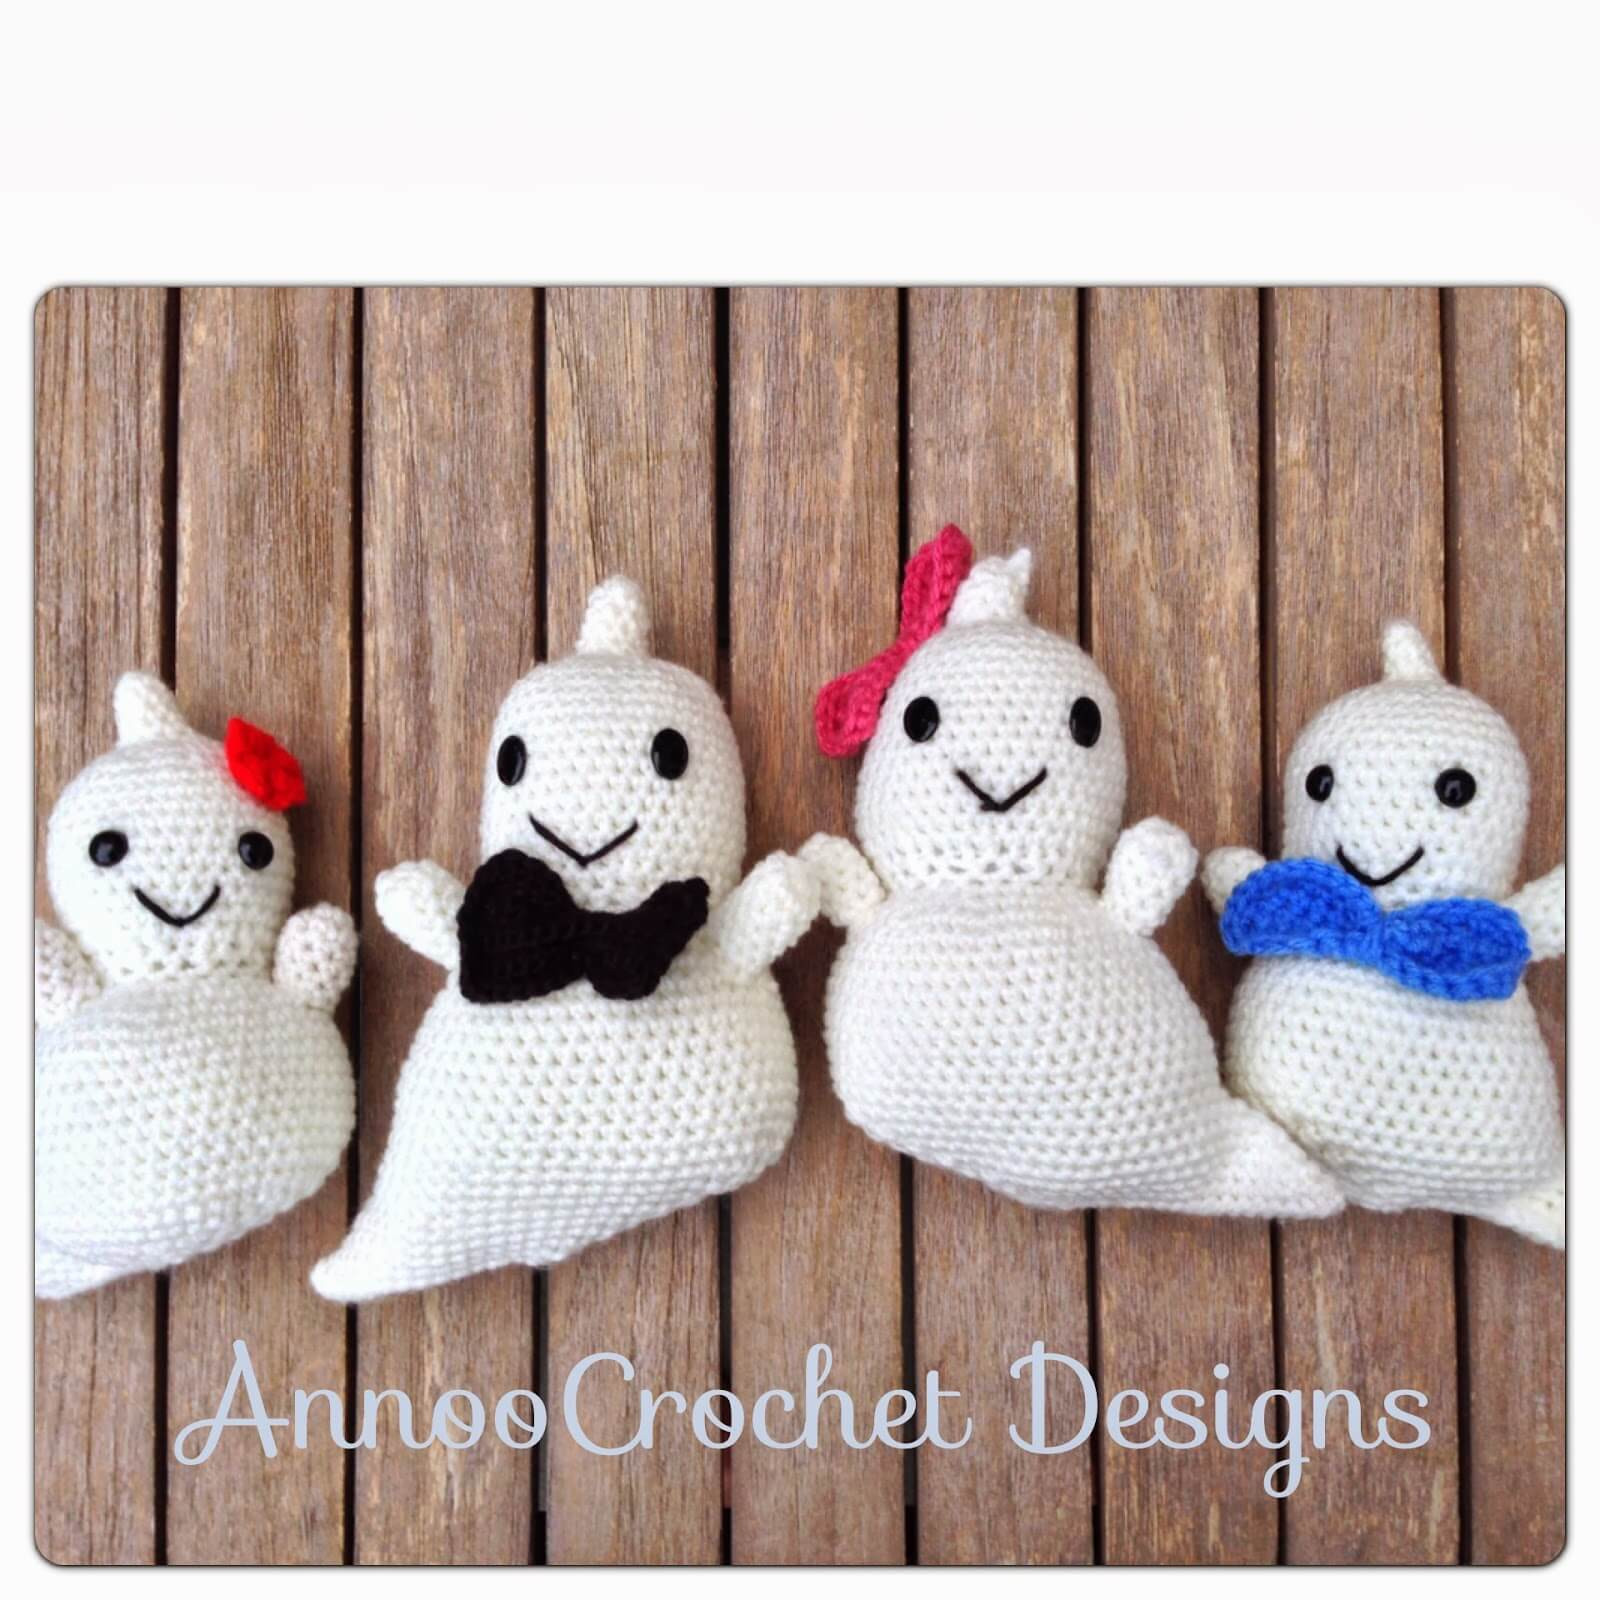 Free Crochet Patterns For Halloween : 17 Amazing Halloween Free Crochet Pattern